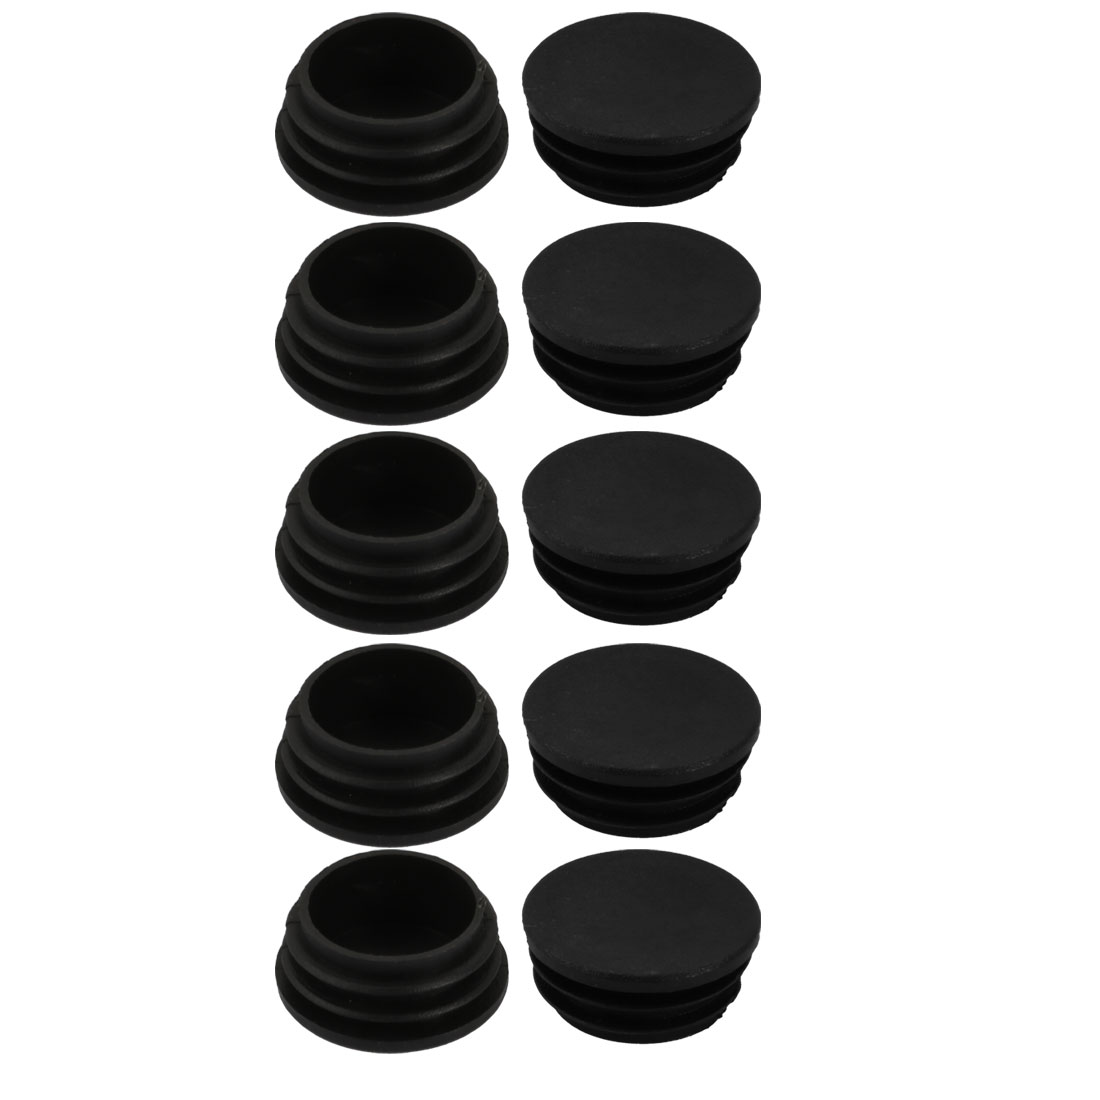 10pcs 38mm Diameter Tube Insert Chair Leg Cap Round Black Plastic Tubing Plug